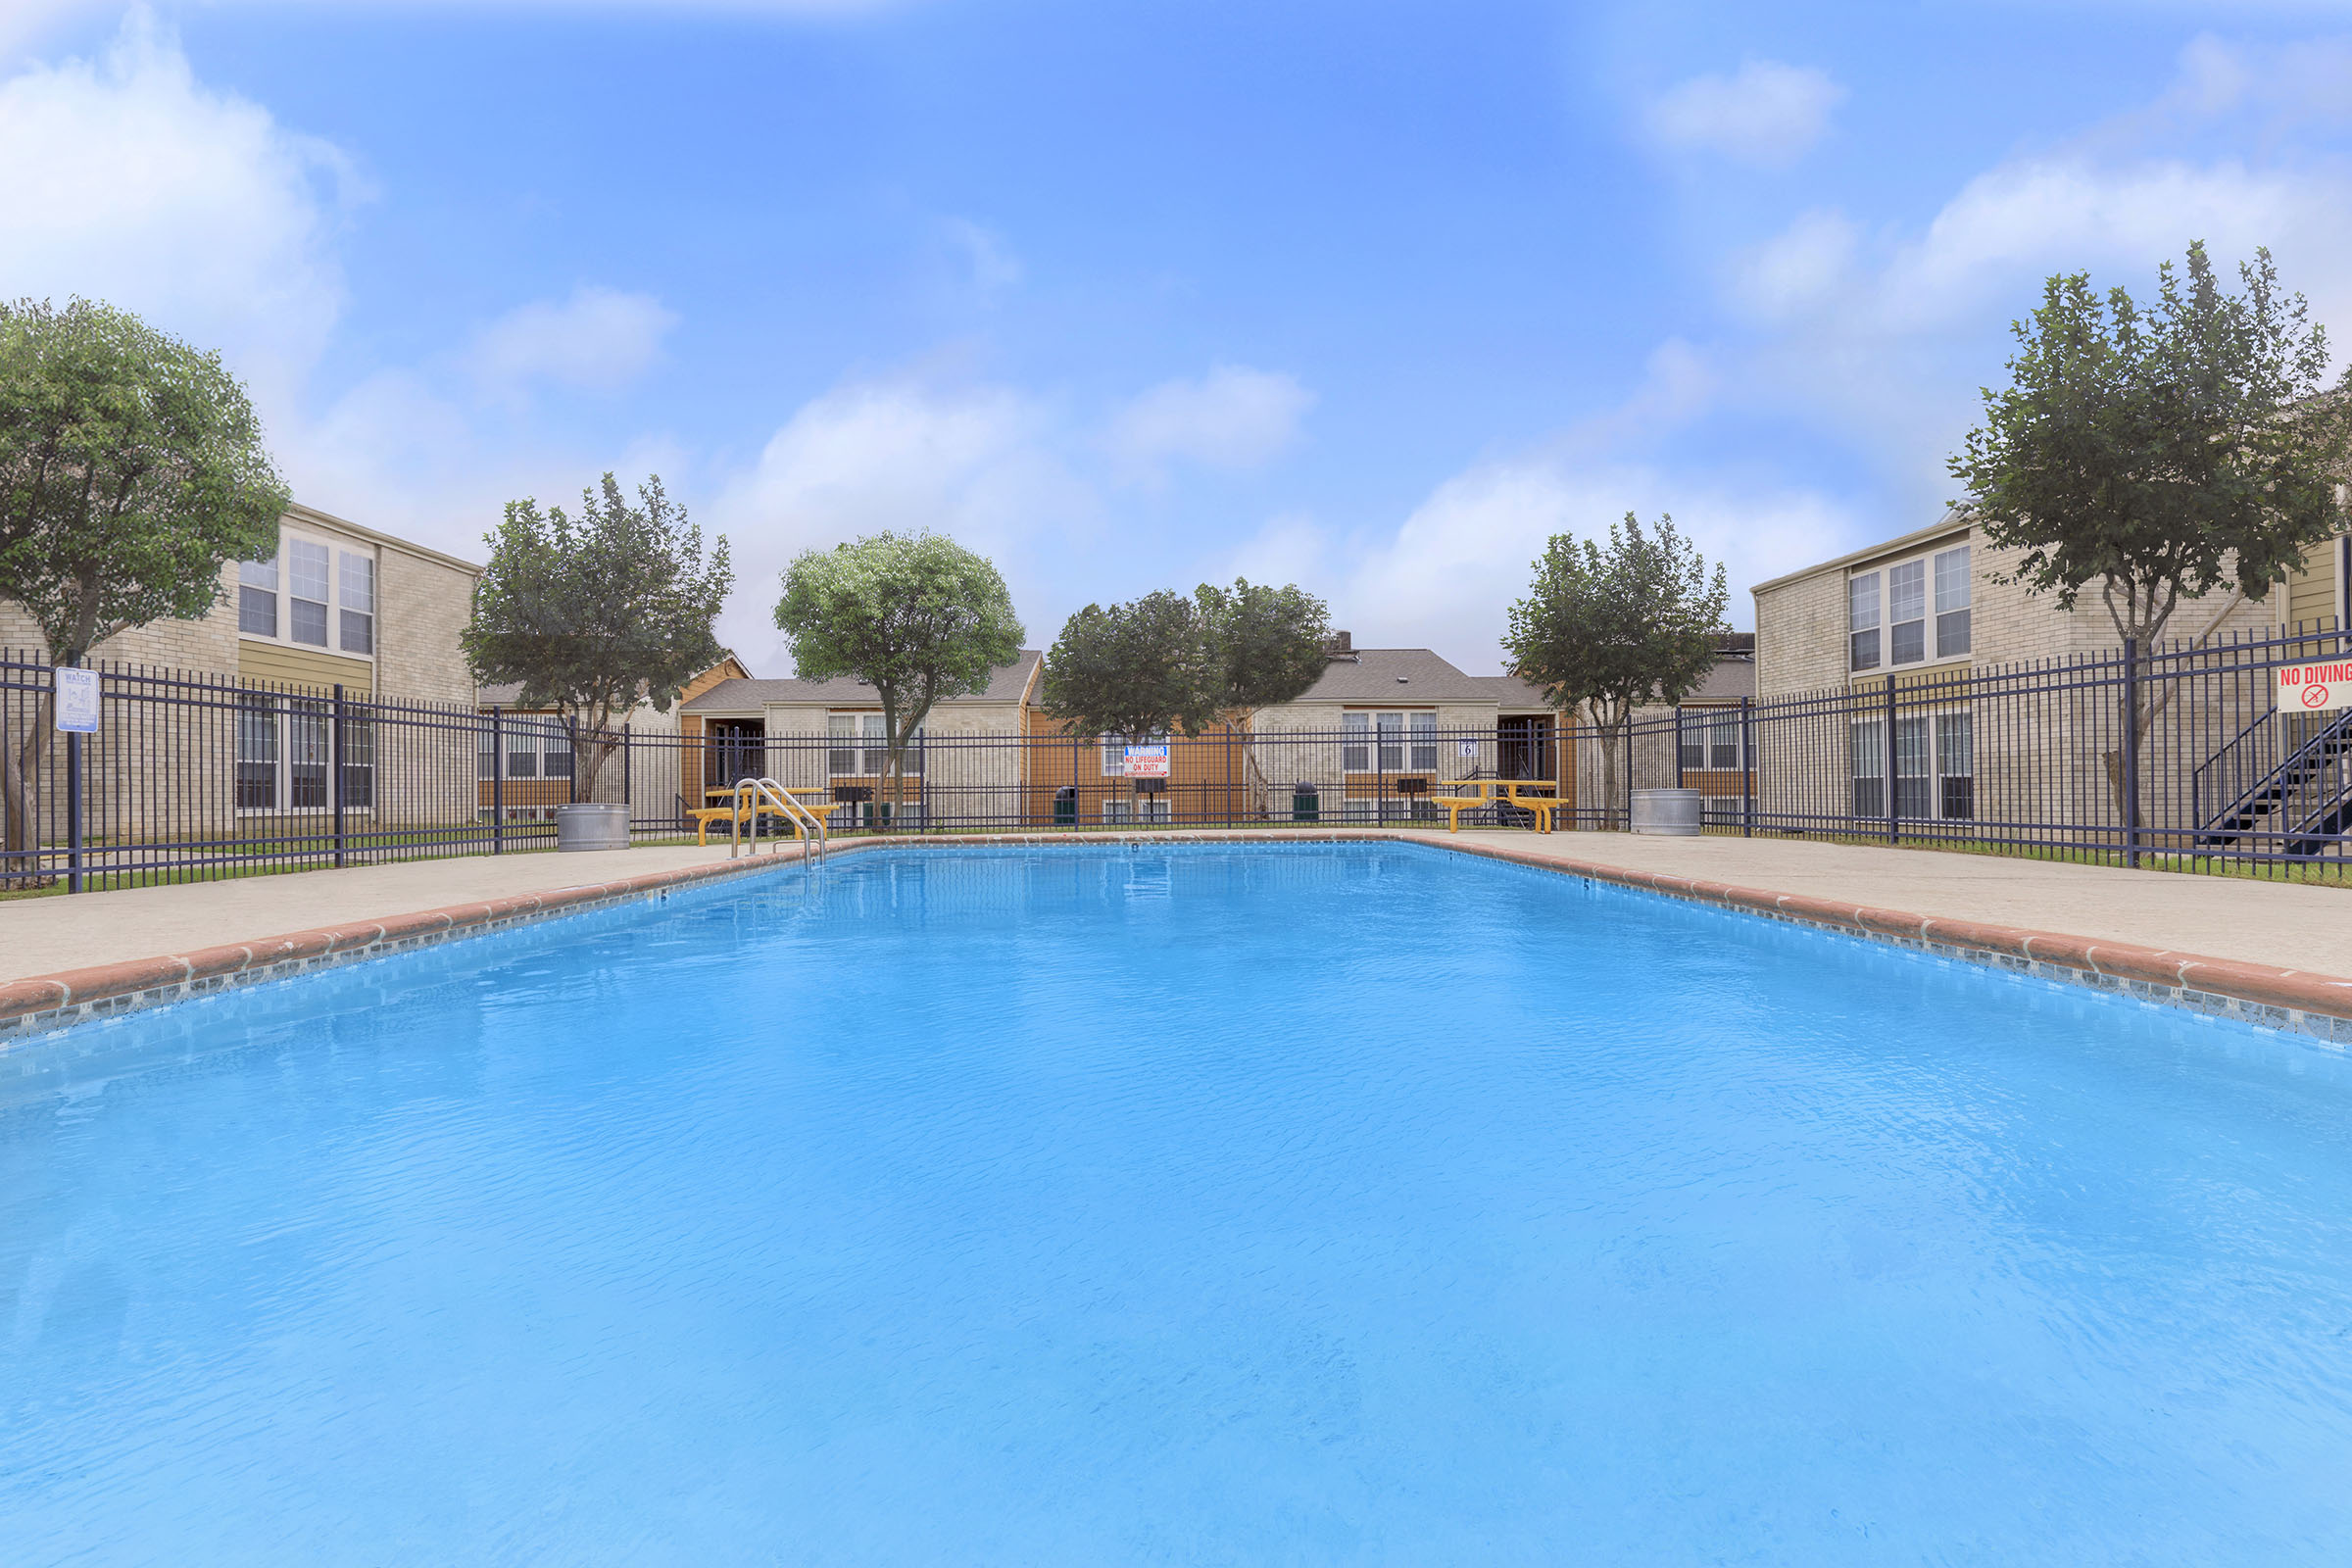 Picture of Hilltop Oaks Apartments